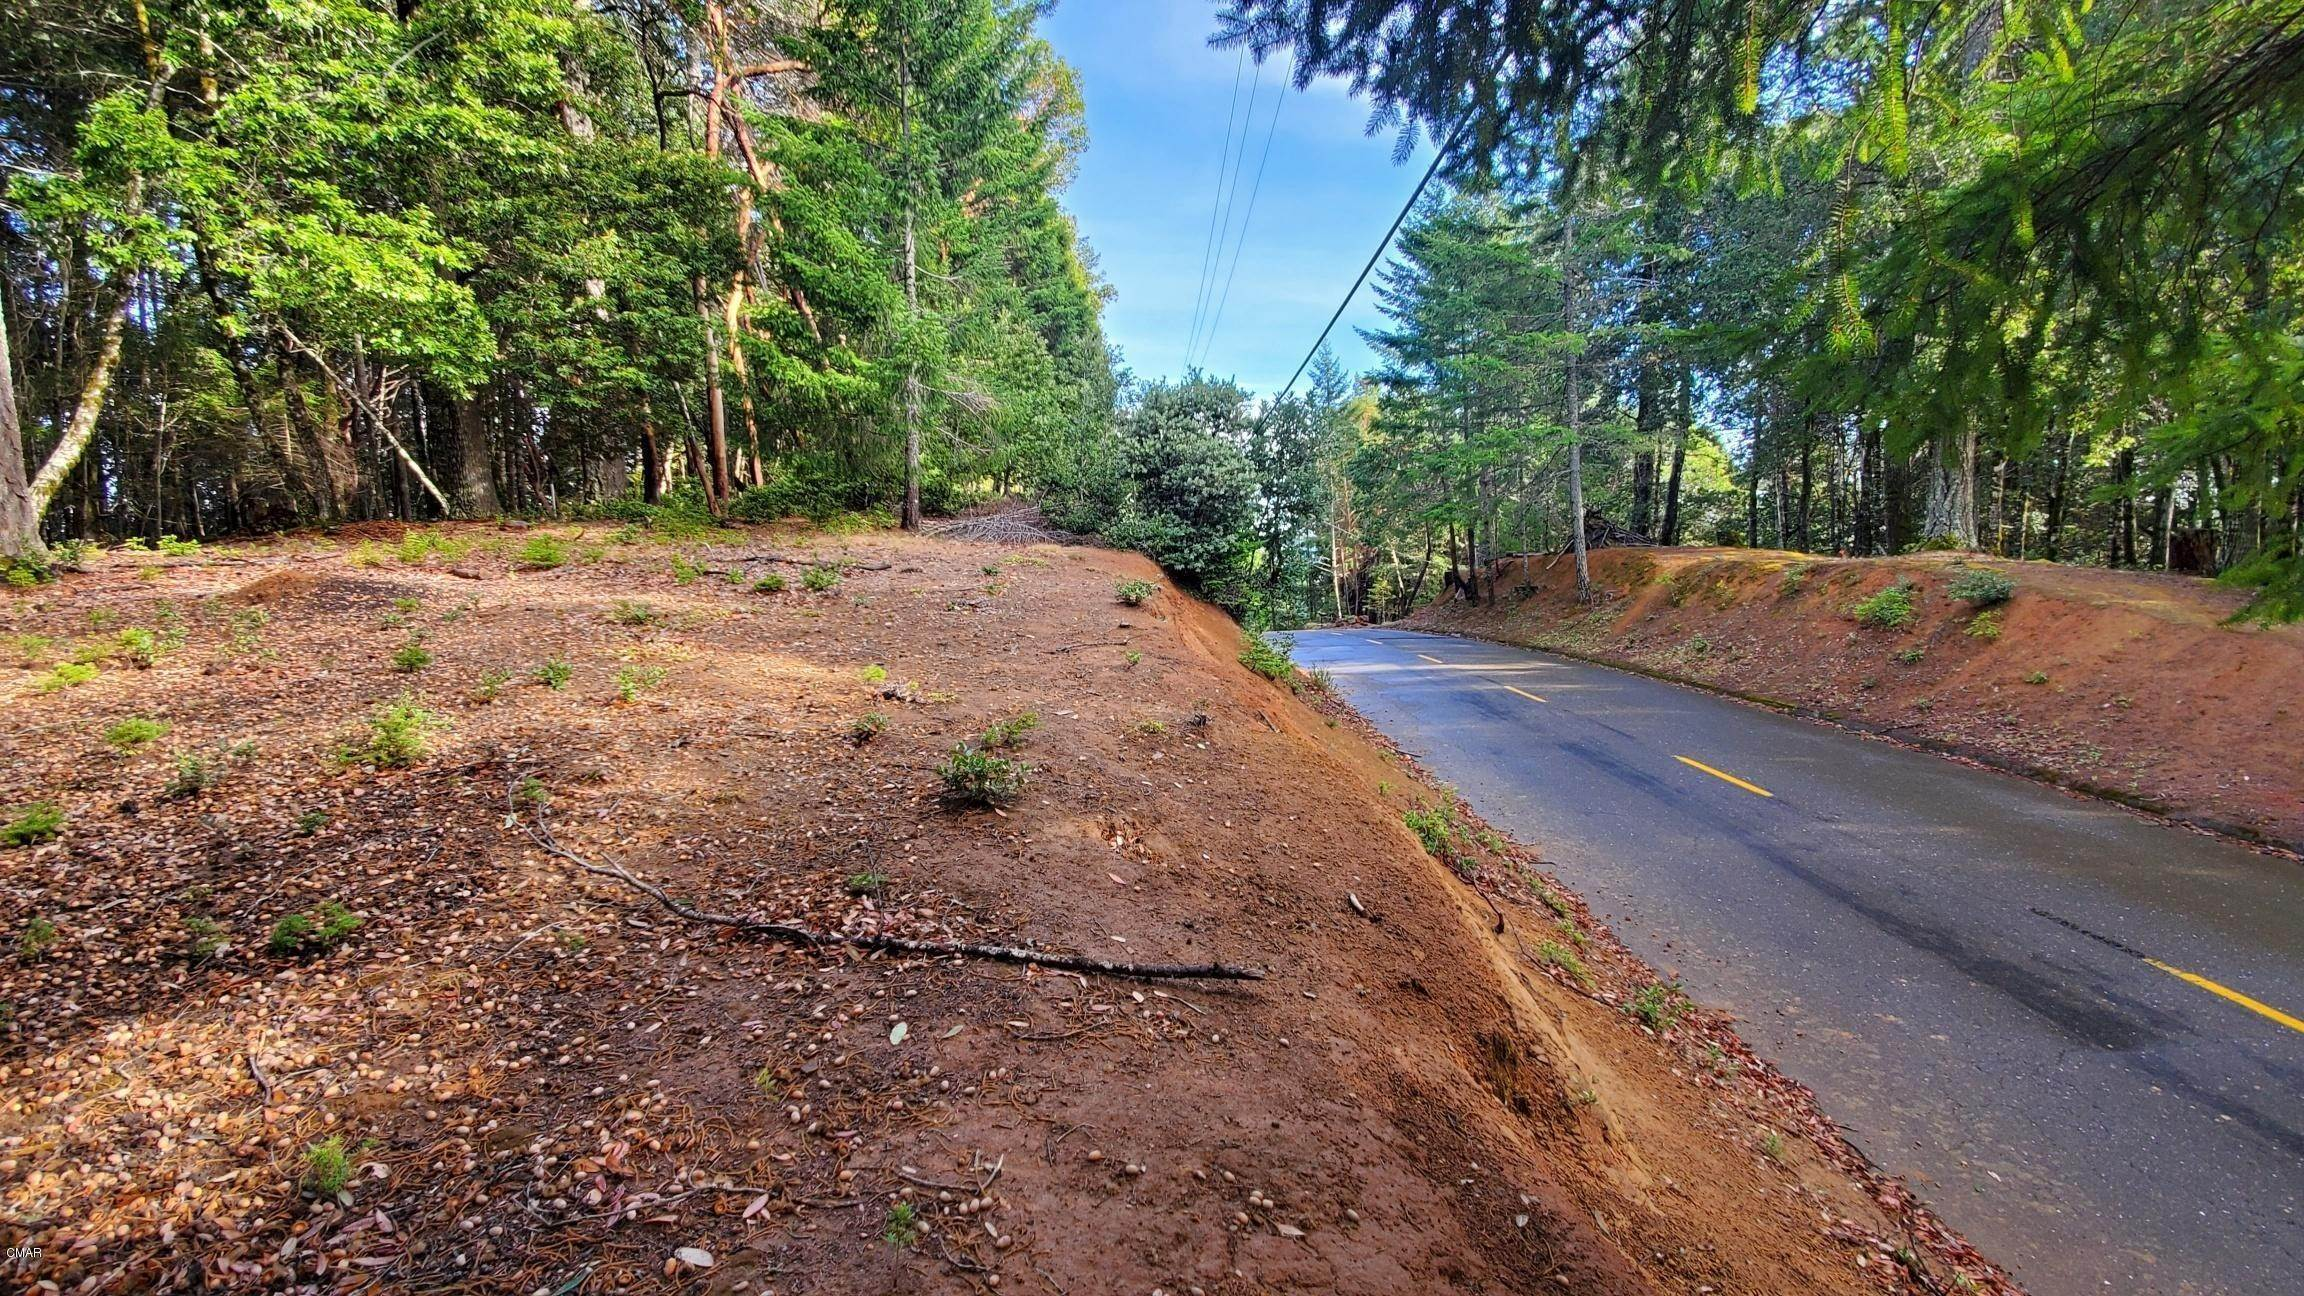 2. Land for Sale at 2410 Buckeye Road Willits, California 95490 United States